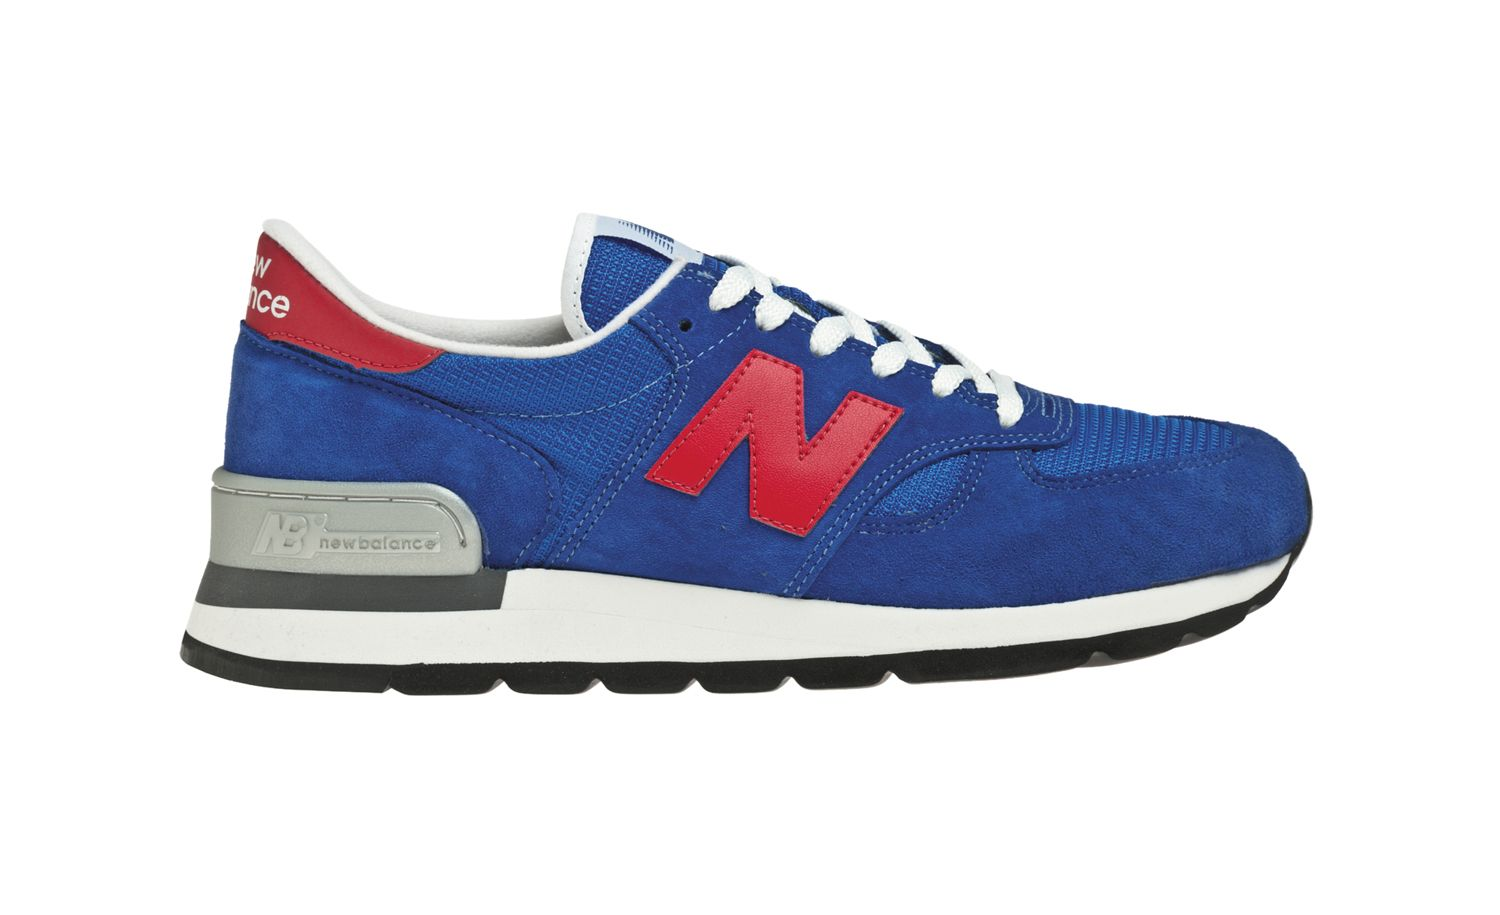 New Balance 990 Made in the USA new balance x social status cm1600 winter in the hamptons